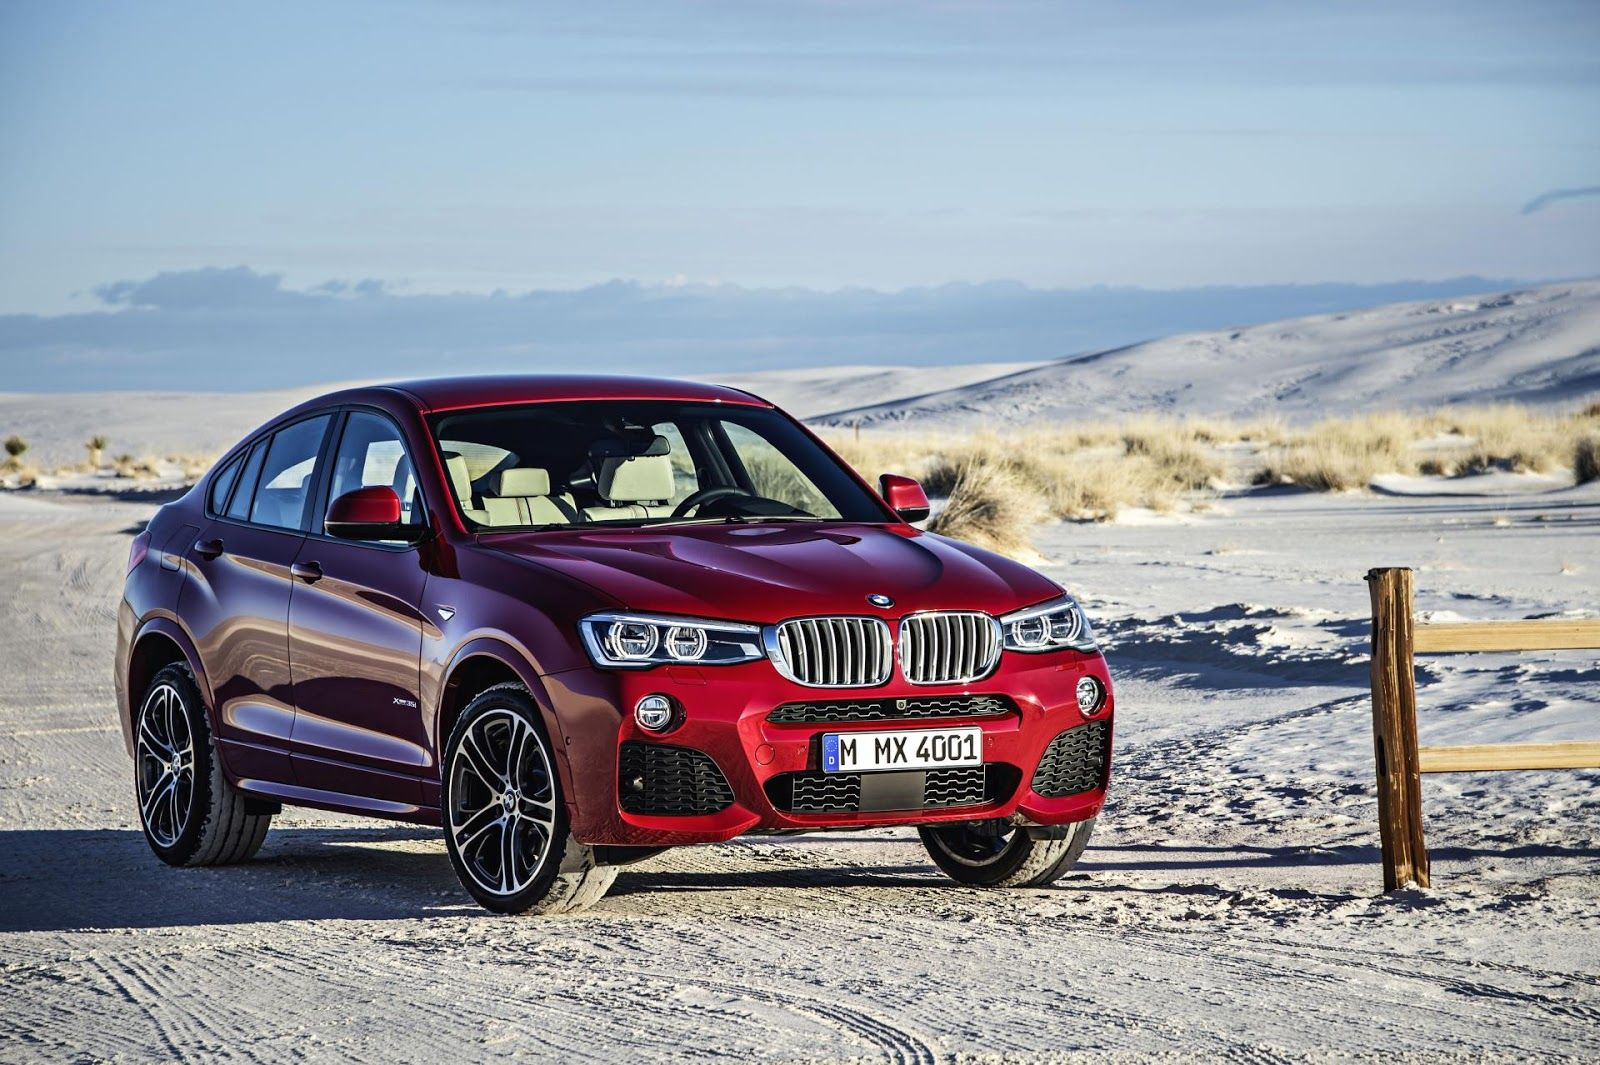 The new bmw blends the hallmark features of the successful bmw x family with the sporting elegance of a classical coupe and introduces the unique sports